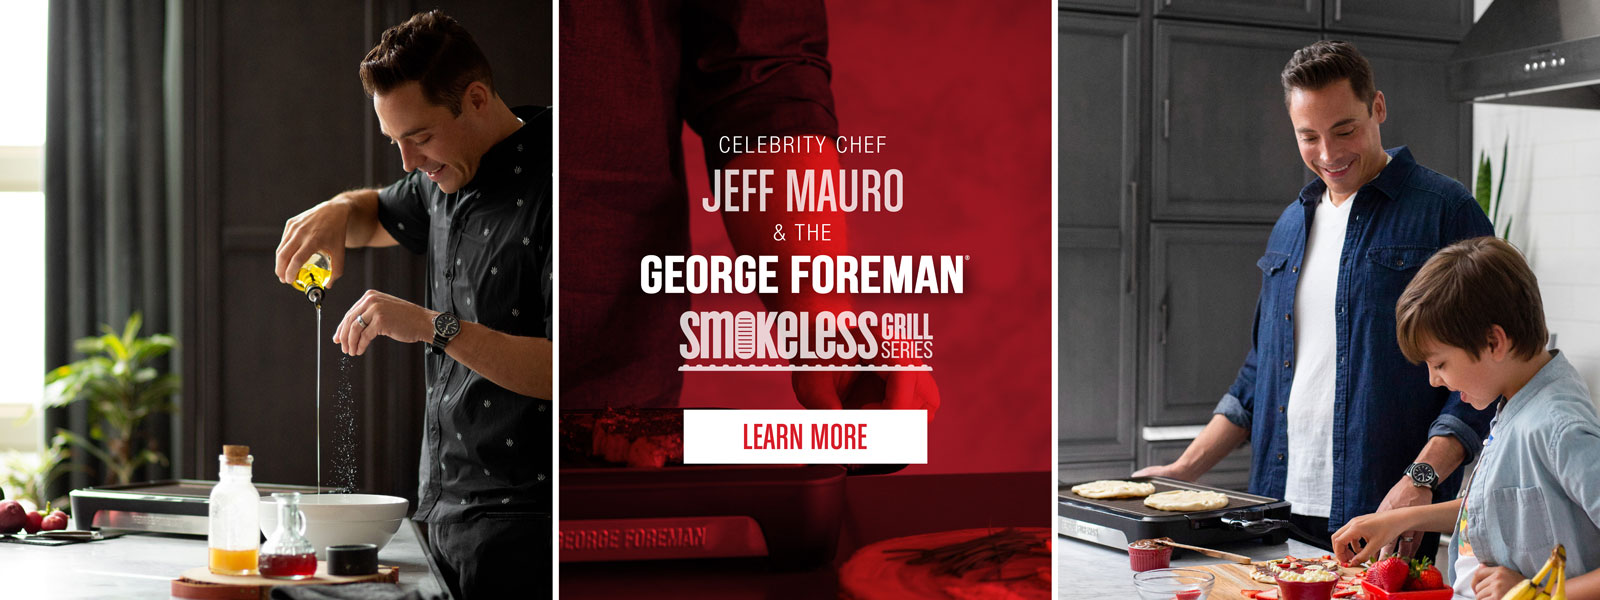 Celebrity Chef Jeff Mauro and the George Foreman Smokeless Grill Series. Learn More!